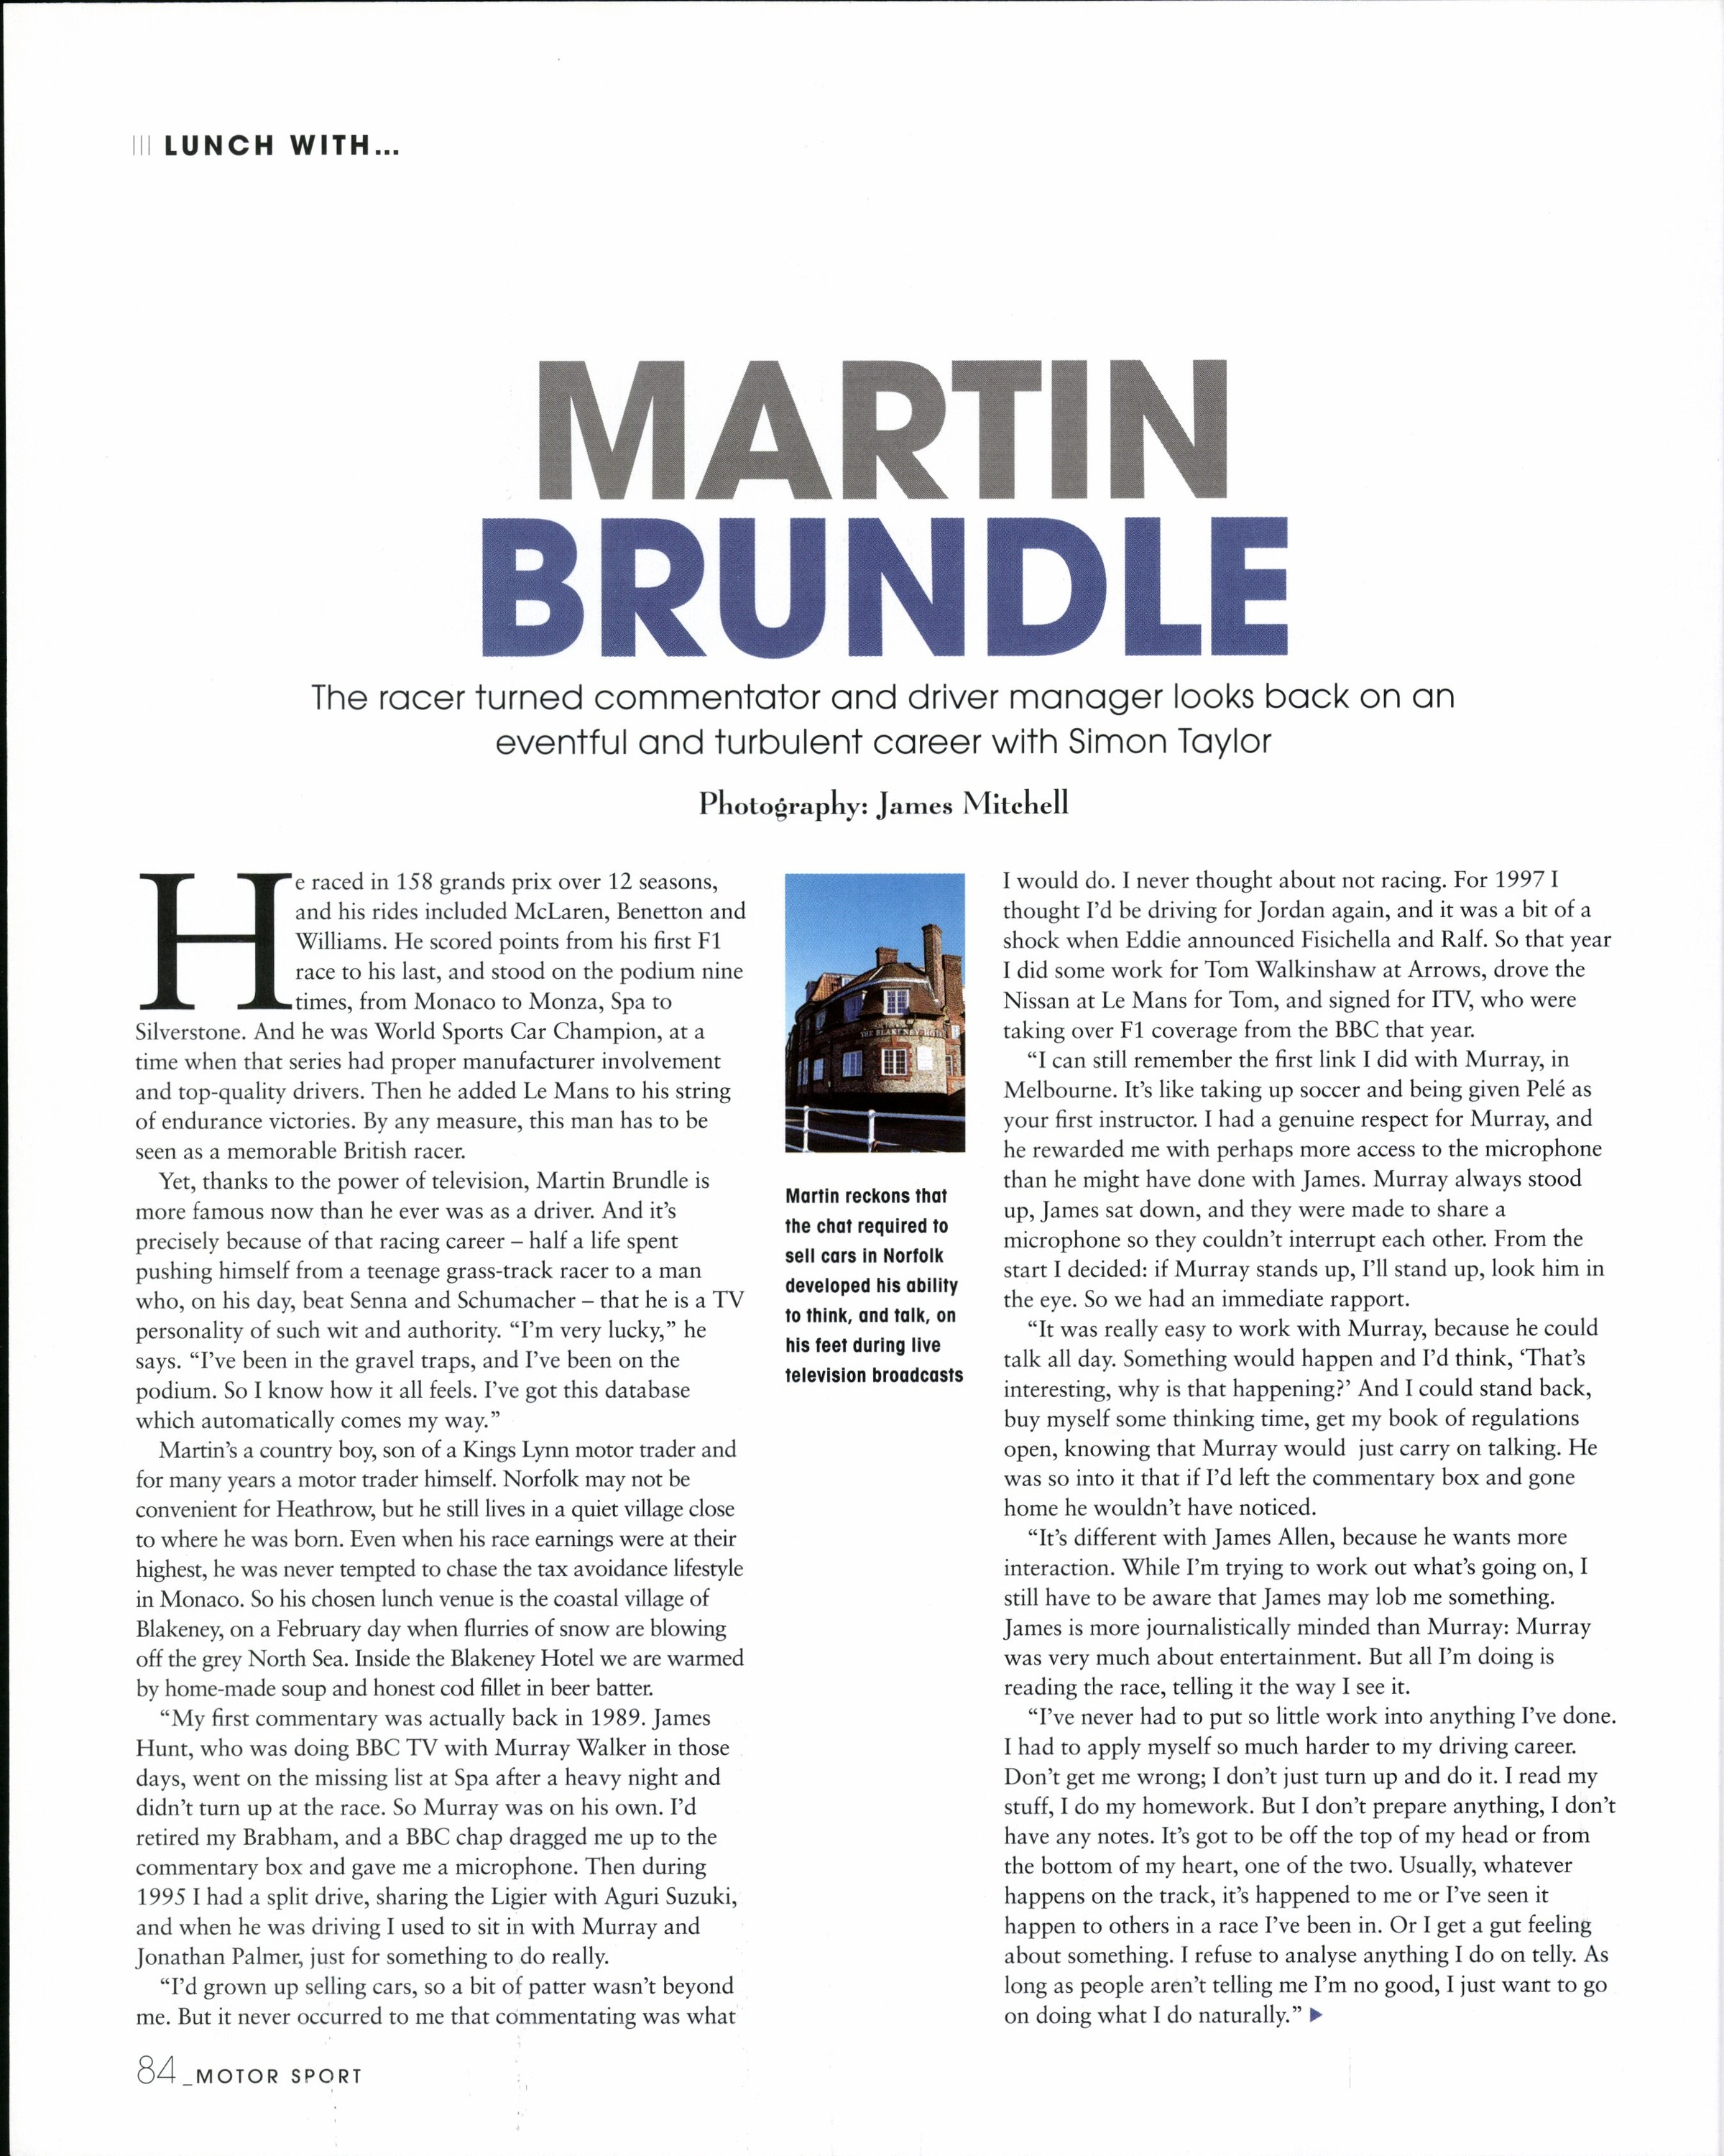 Lunch with... Martin Brundle image